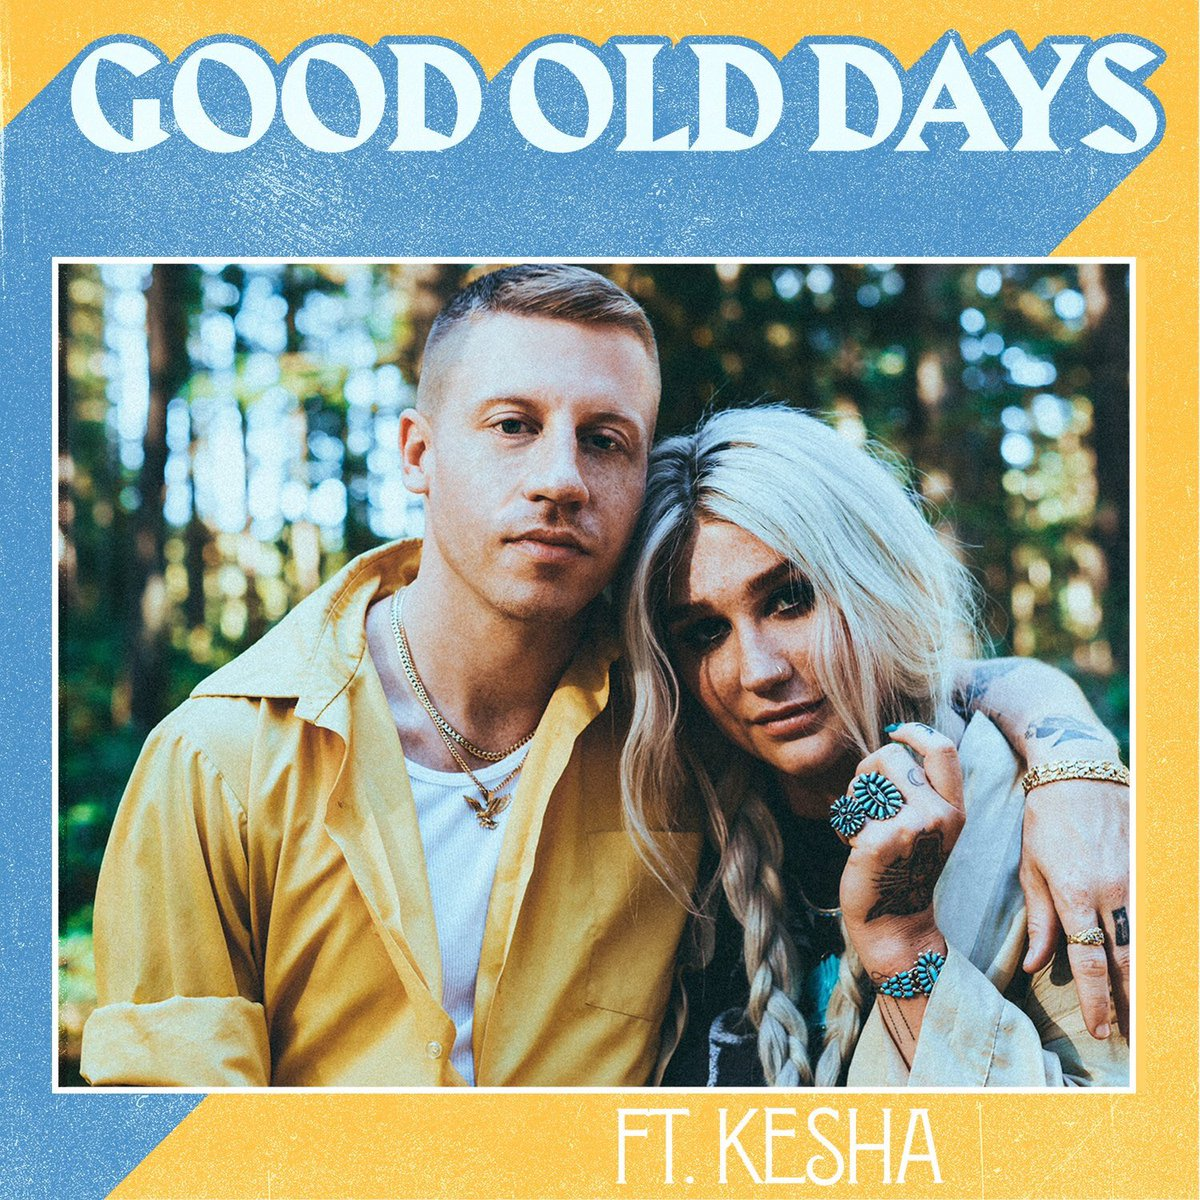 These two are a match made in musical heaven. Love #GoodOldDays and can&#39;t wait for the album #Gemini out on Friday! @macklemore @KeshaRose<br>http://pic.twitter.com/AJjgr2SIxp